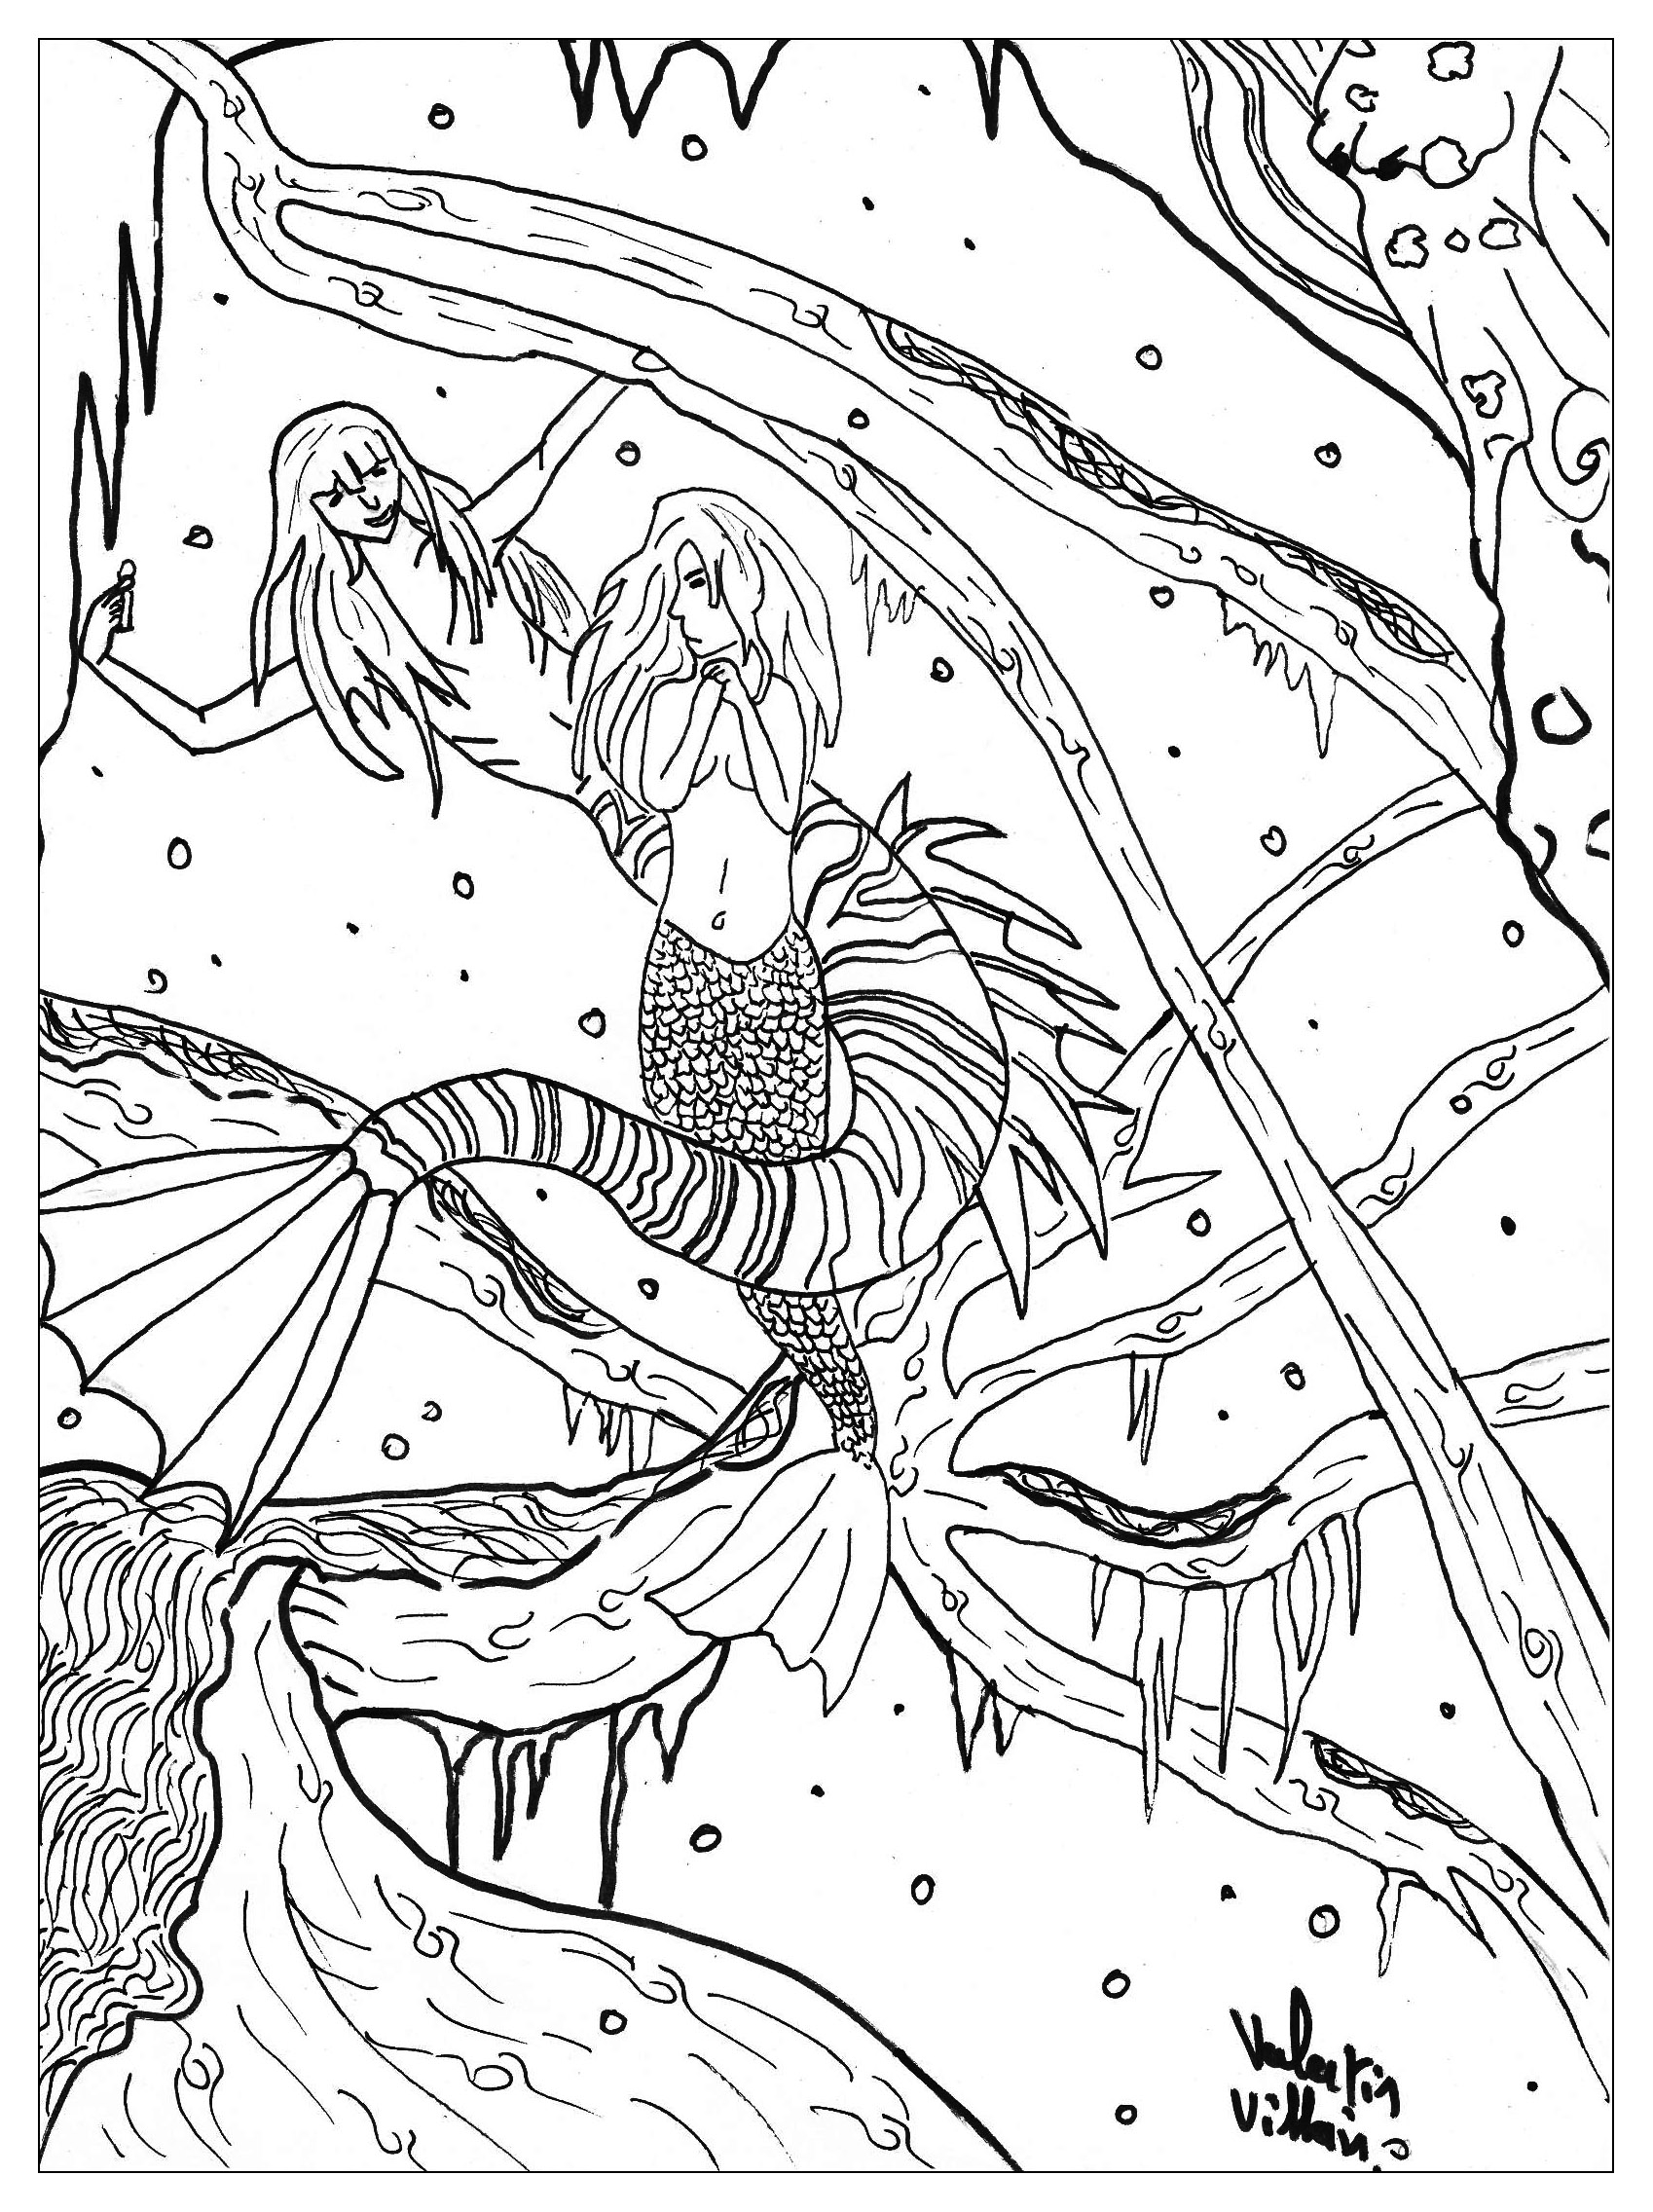 32 Grimm Fairy Tale Coloring Pages - Free Printable ...